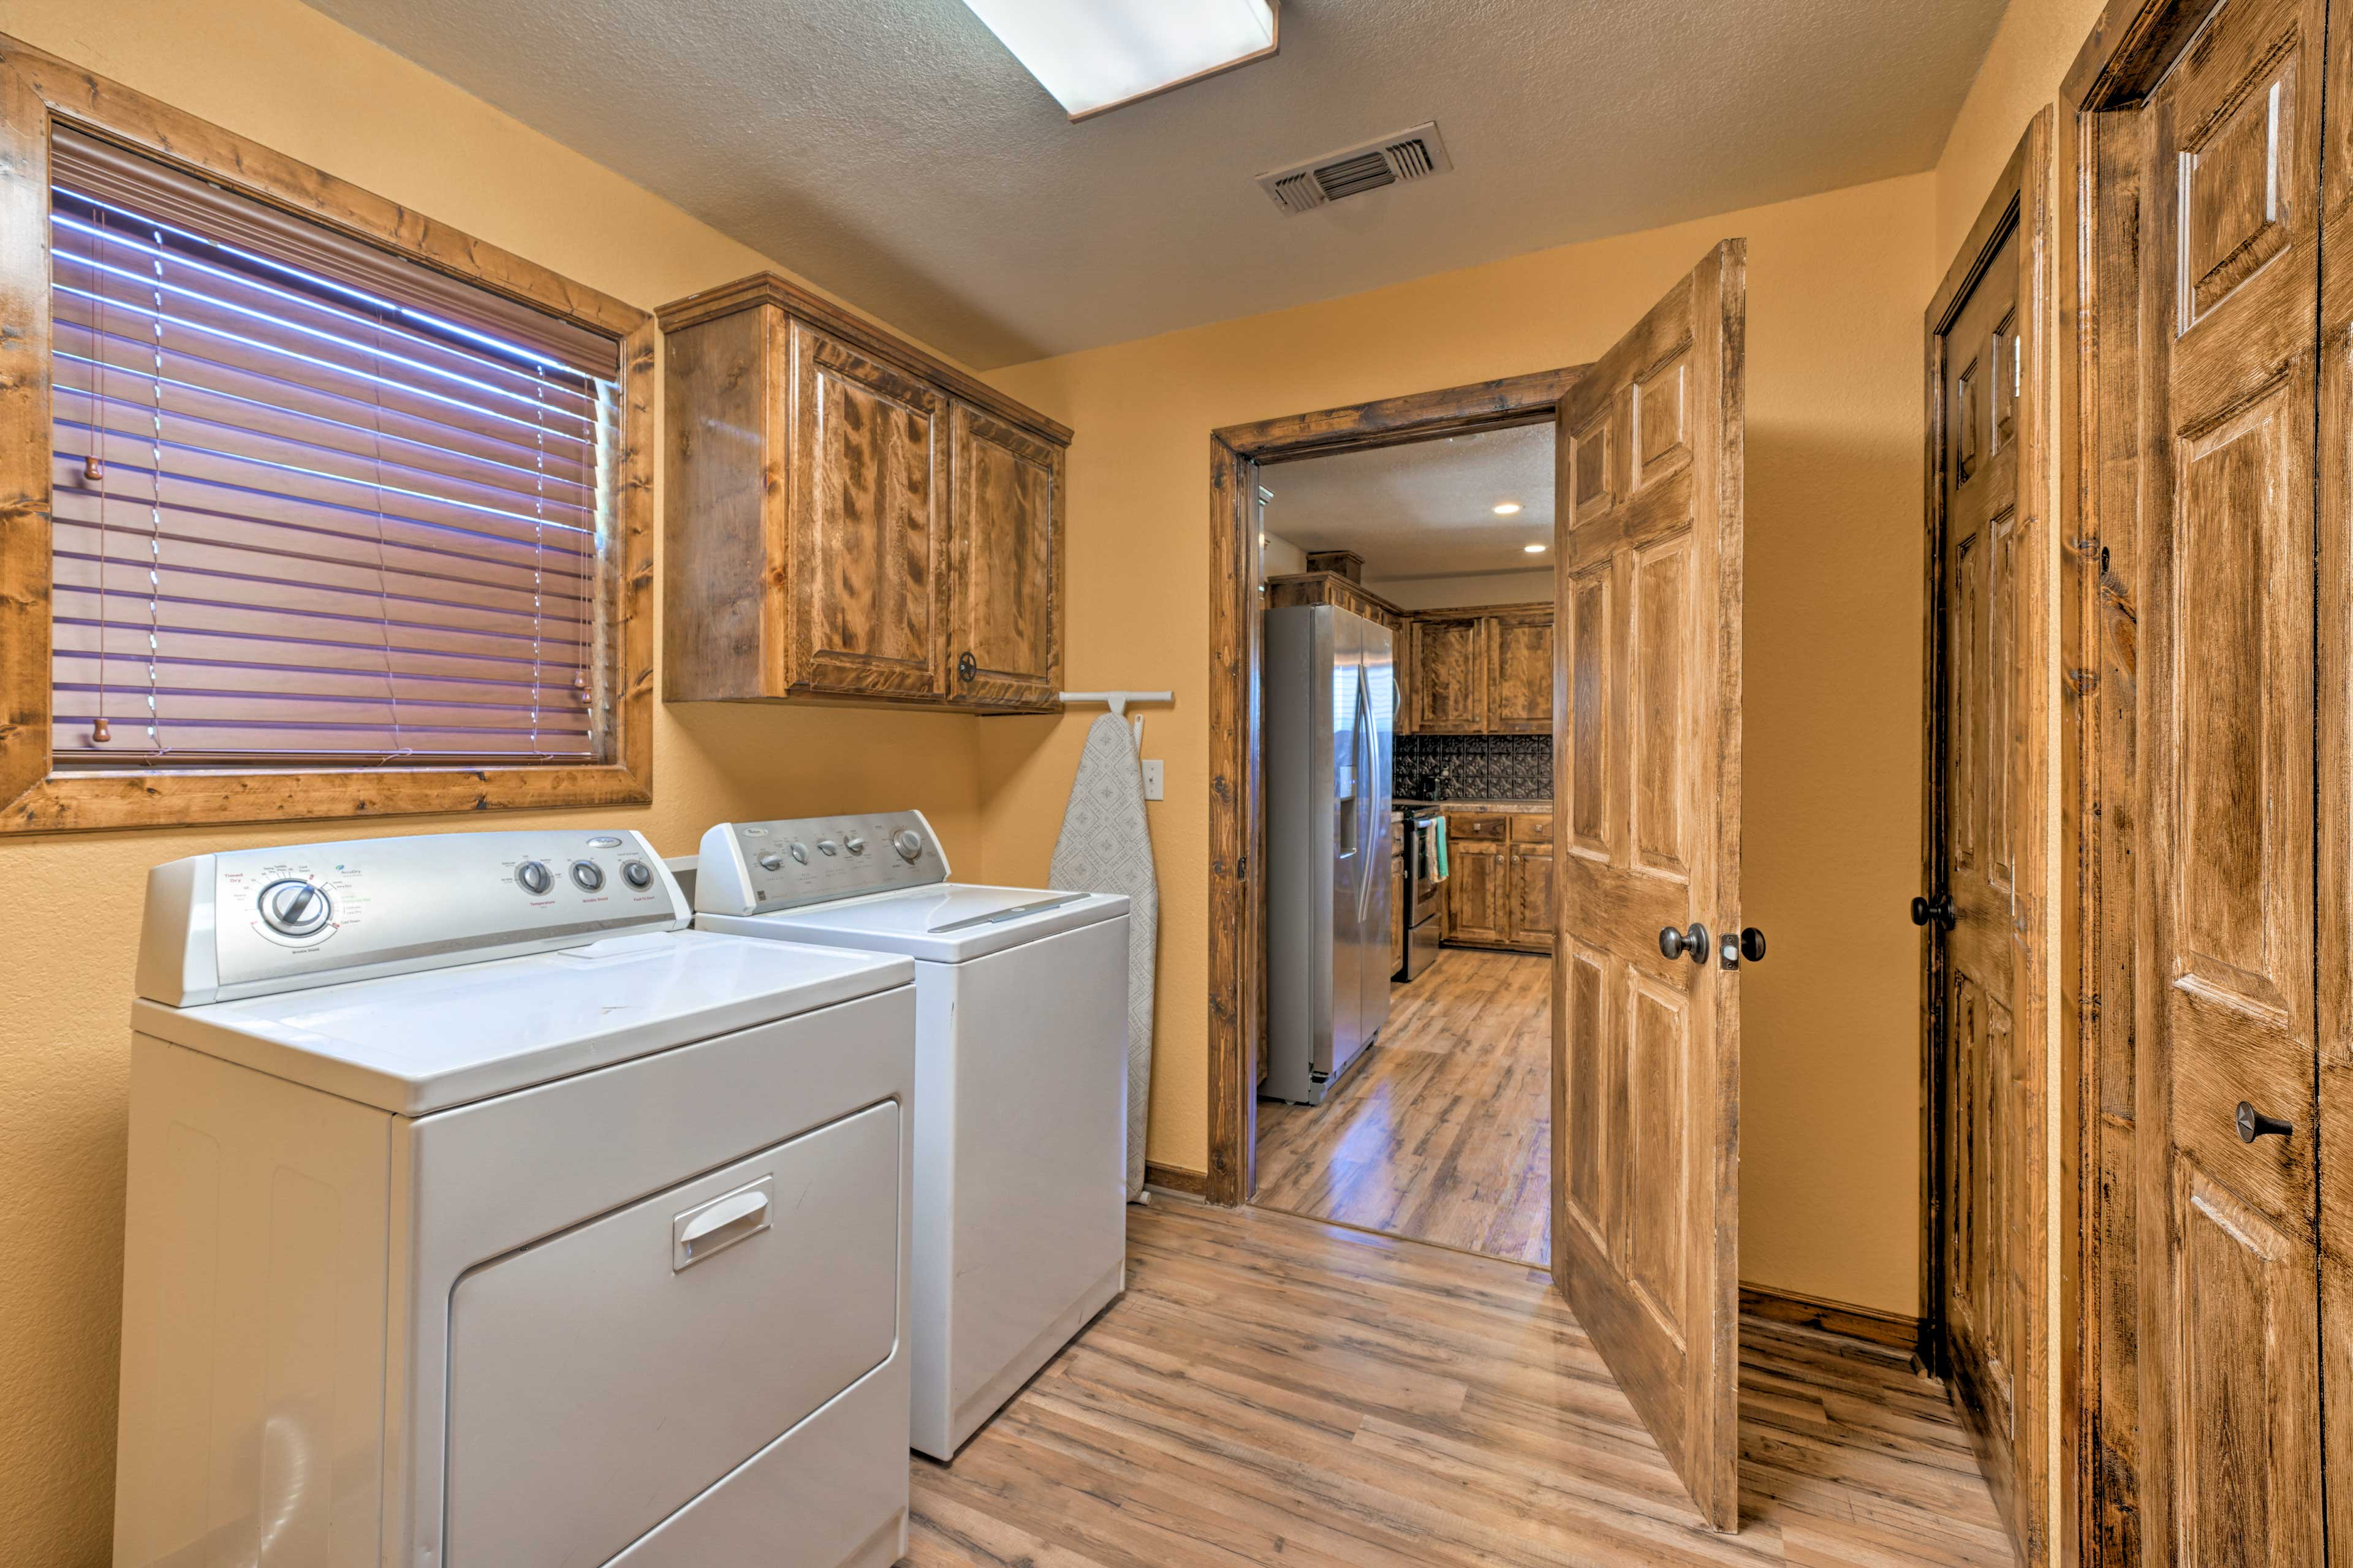 The on-site washer and dryer will make it a breeze to keep your clothes clean.